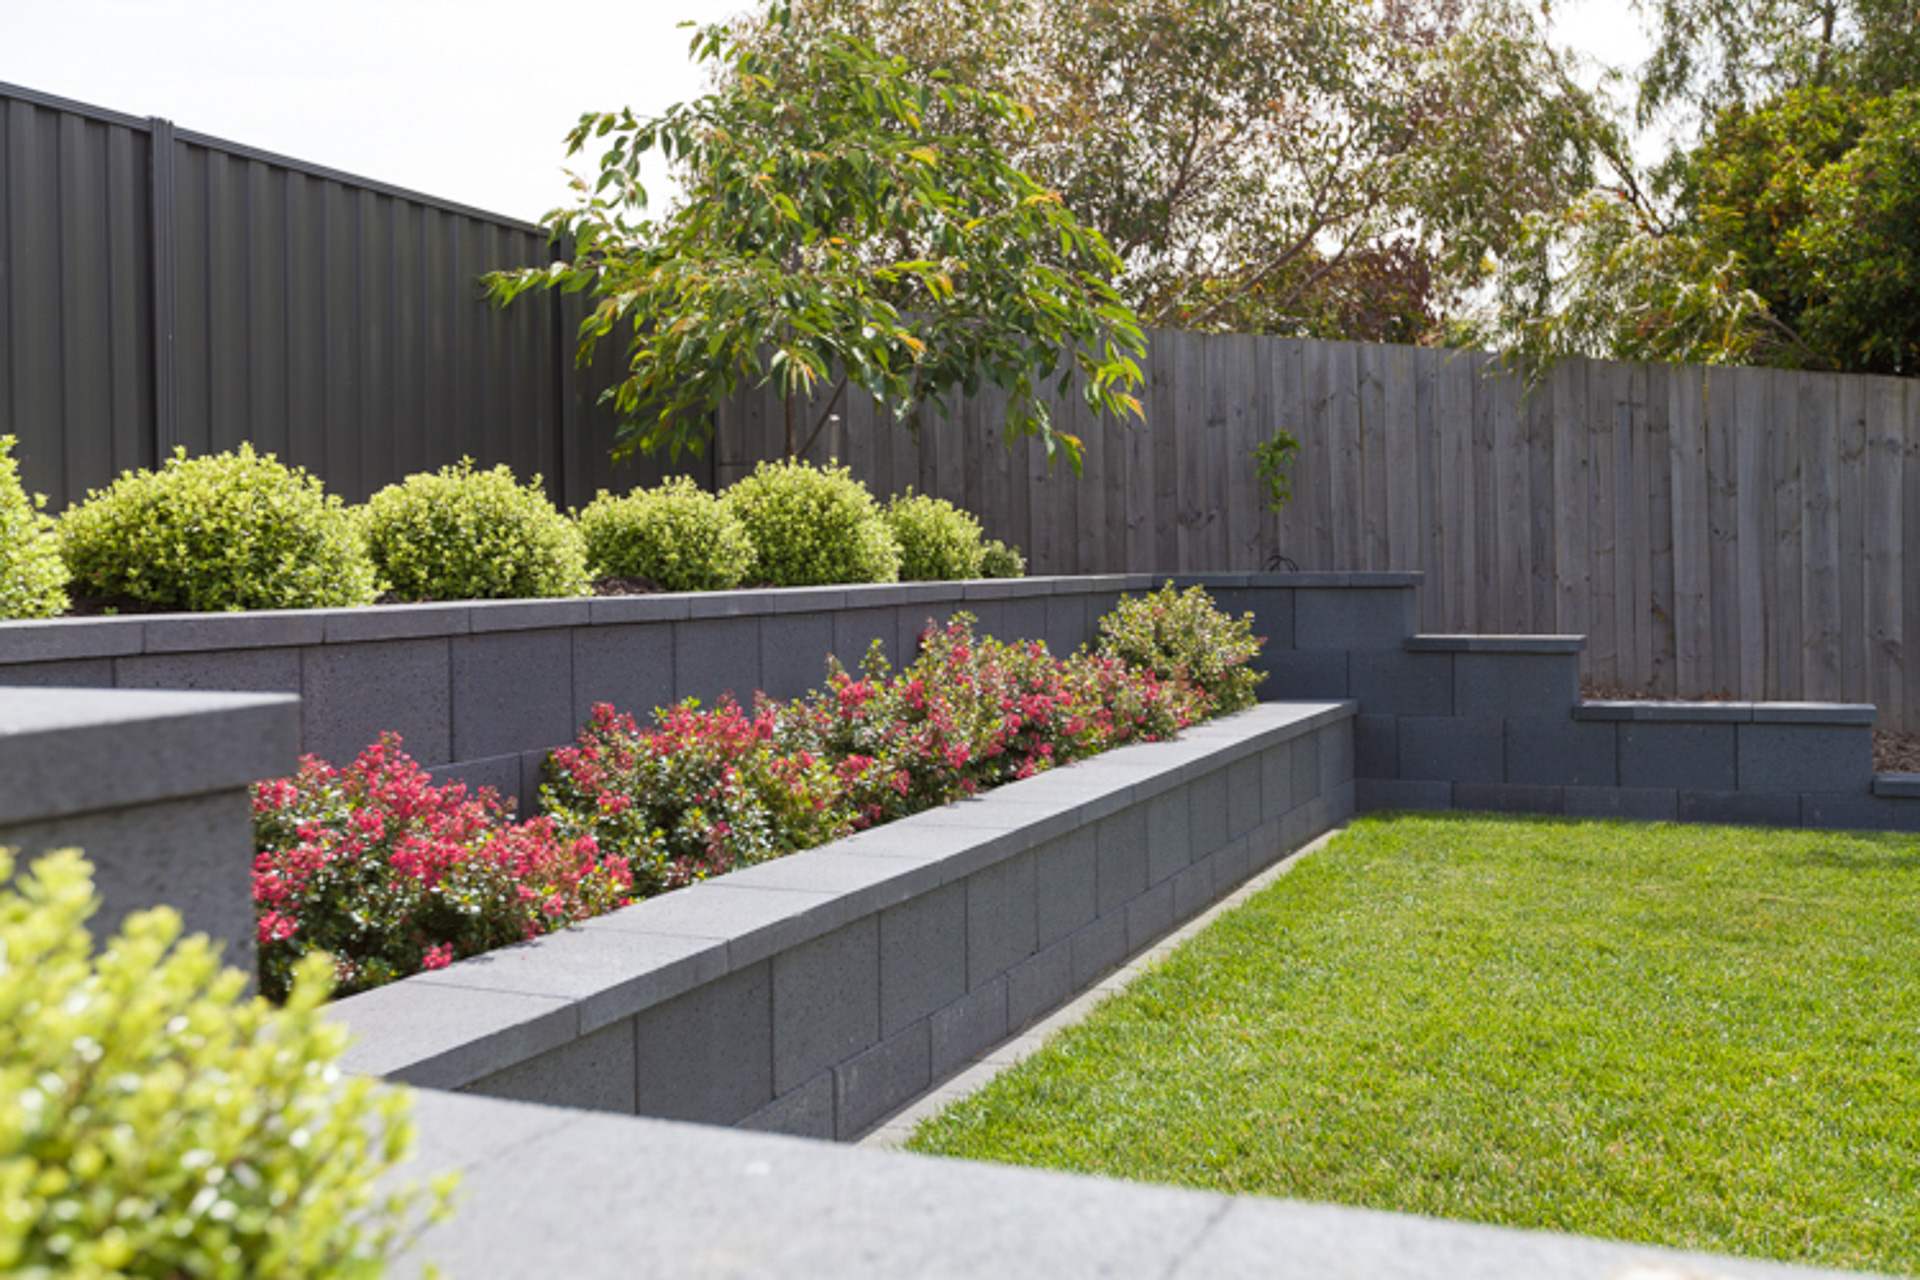 Large Flat Stones Landscaping